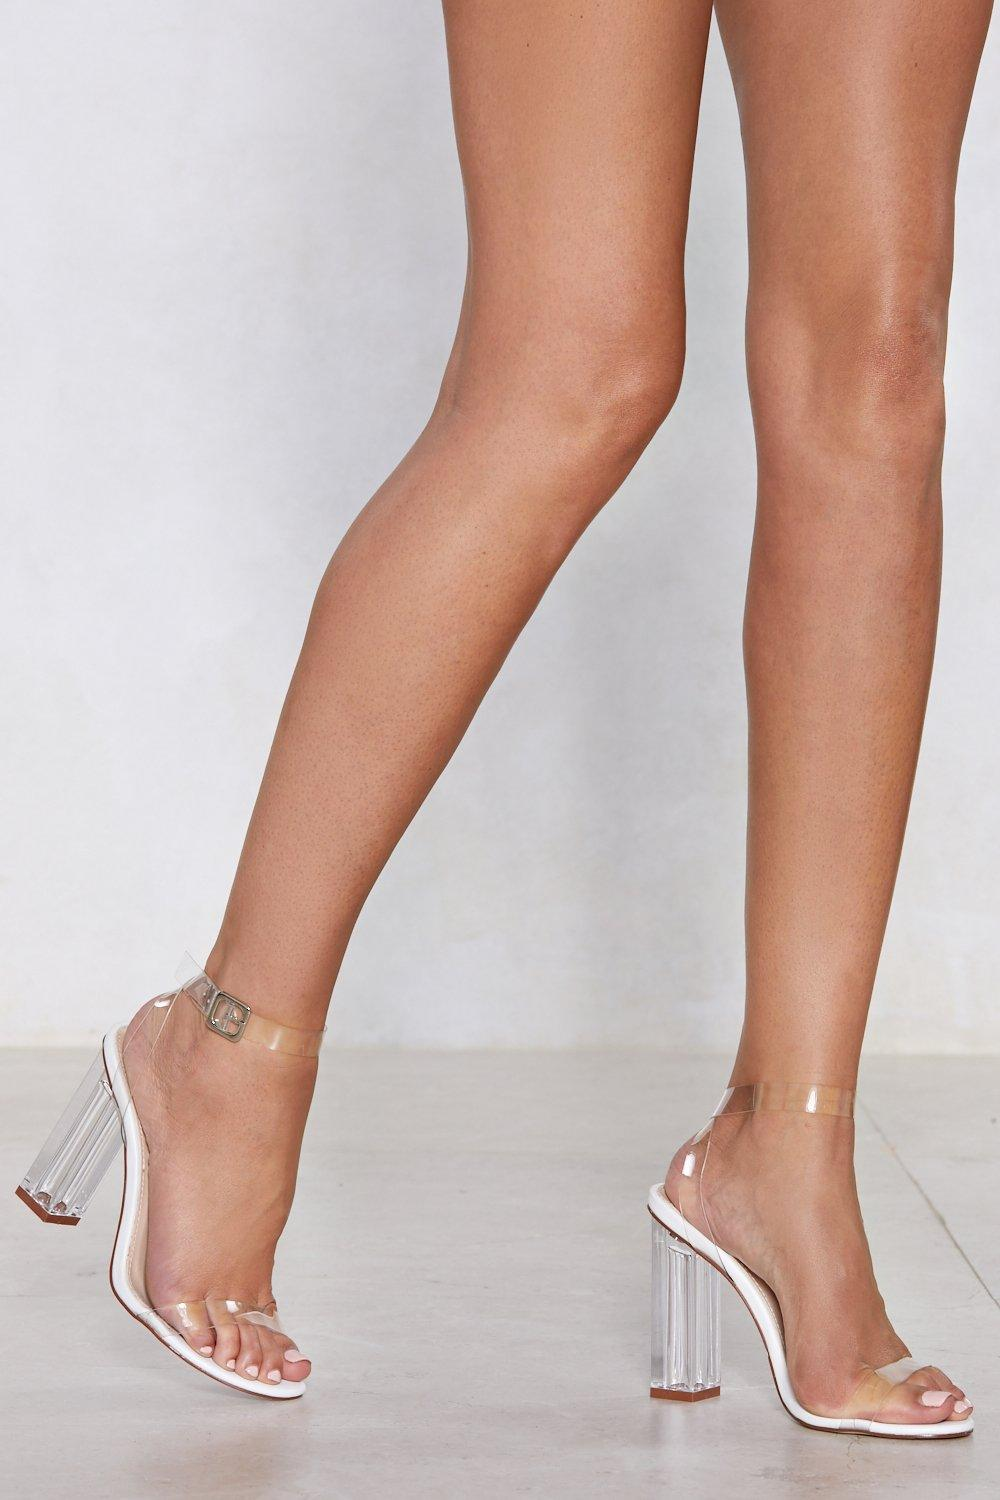 b4952b99646 Let's Be Clear Heel   Shop Clothes at Nasty Gal!